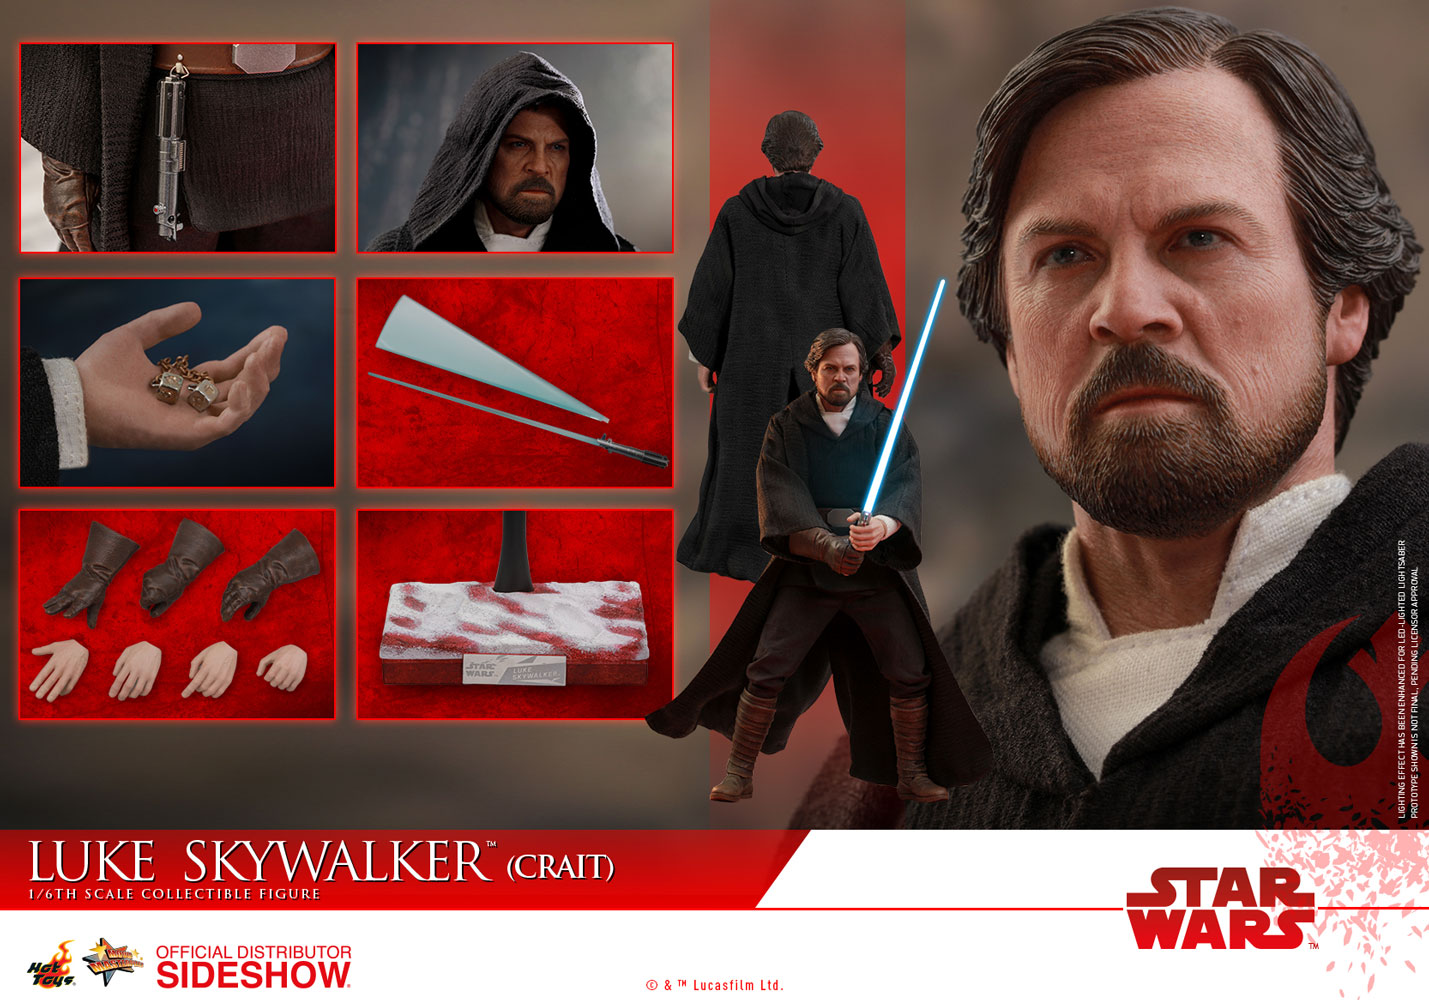 star-wars-luke-skywalker-crait-sixth-scale-figure-hot-toys-903743-22